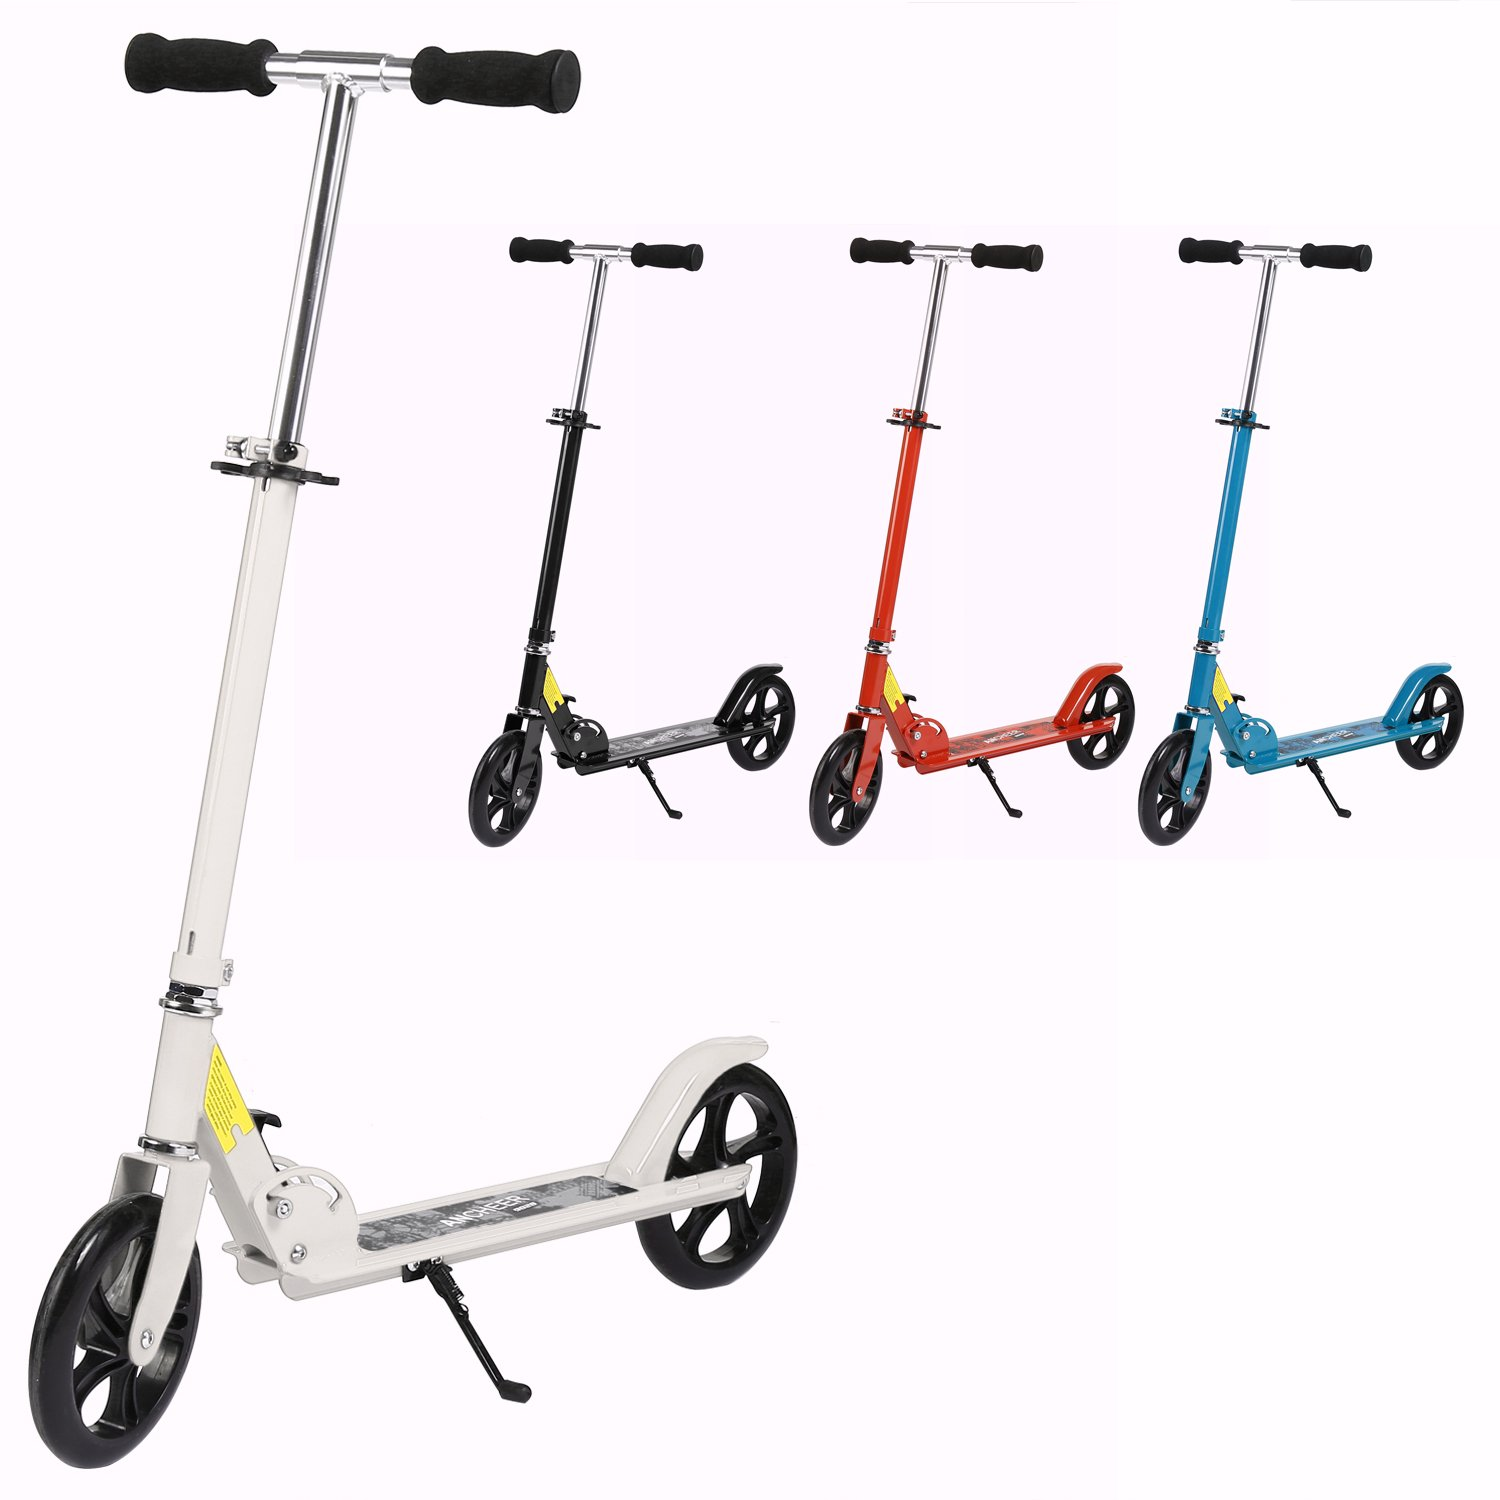 Kick Scooter for Adult Teen Kids Age 12 Up, Adjustable-Height Easy-Folding City Urban Commuter Push Scooter with Big Wheels